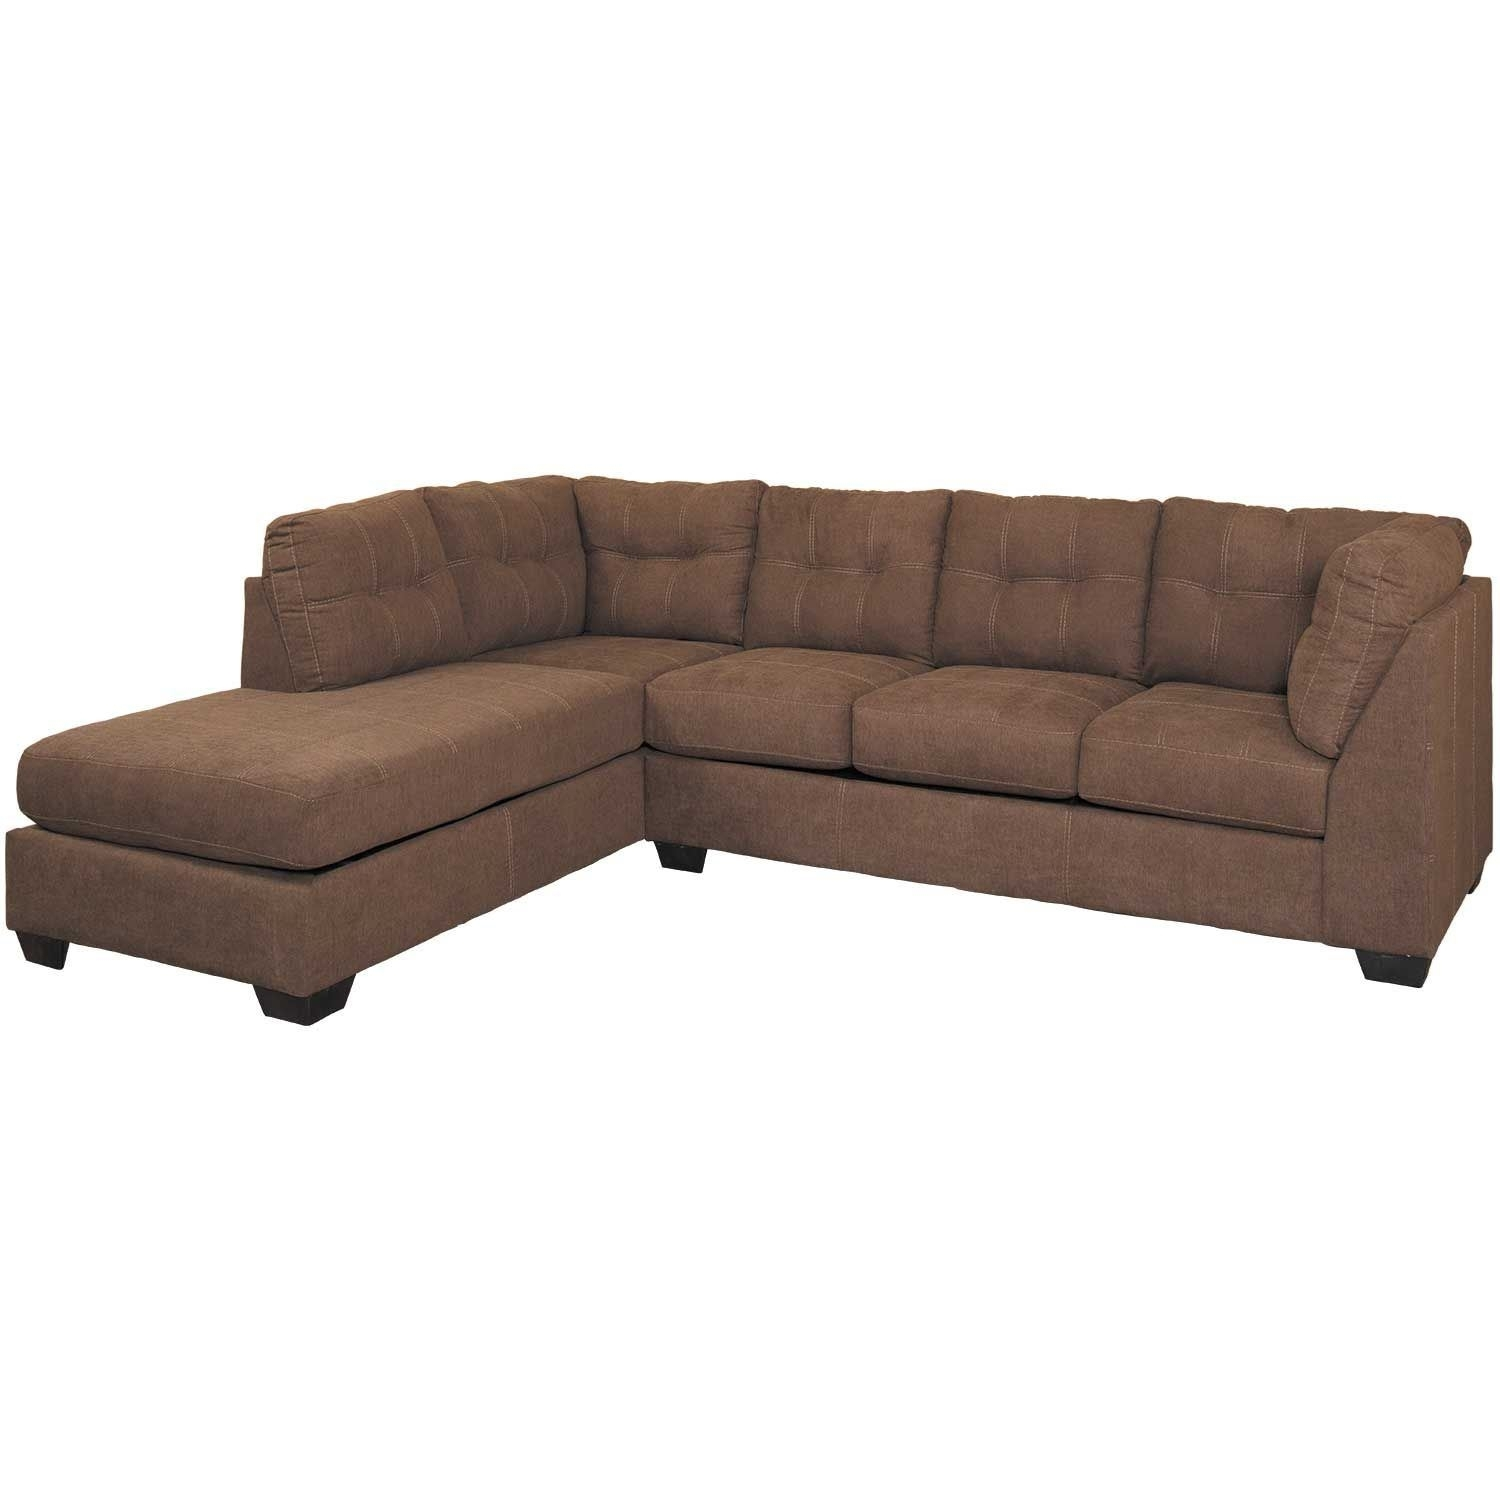 Maier Walnut 2 Piece Sectional With Laf Chaise | 4520116/67 | Ashley pertaining to Arrowmask 2 Piece Sectionals With Laf Chaise (Image 20 of 30)